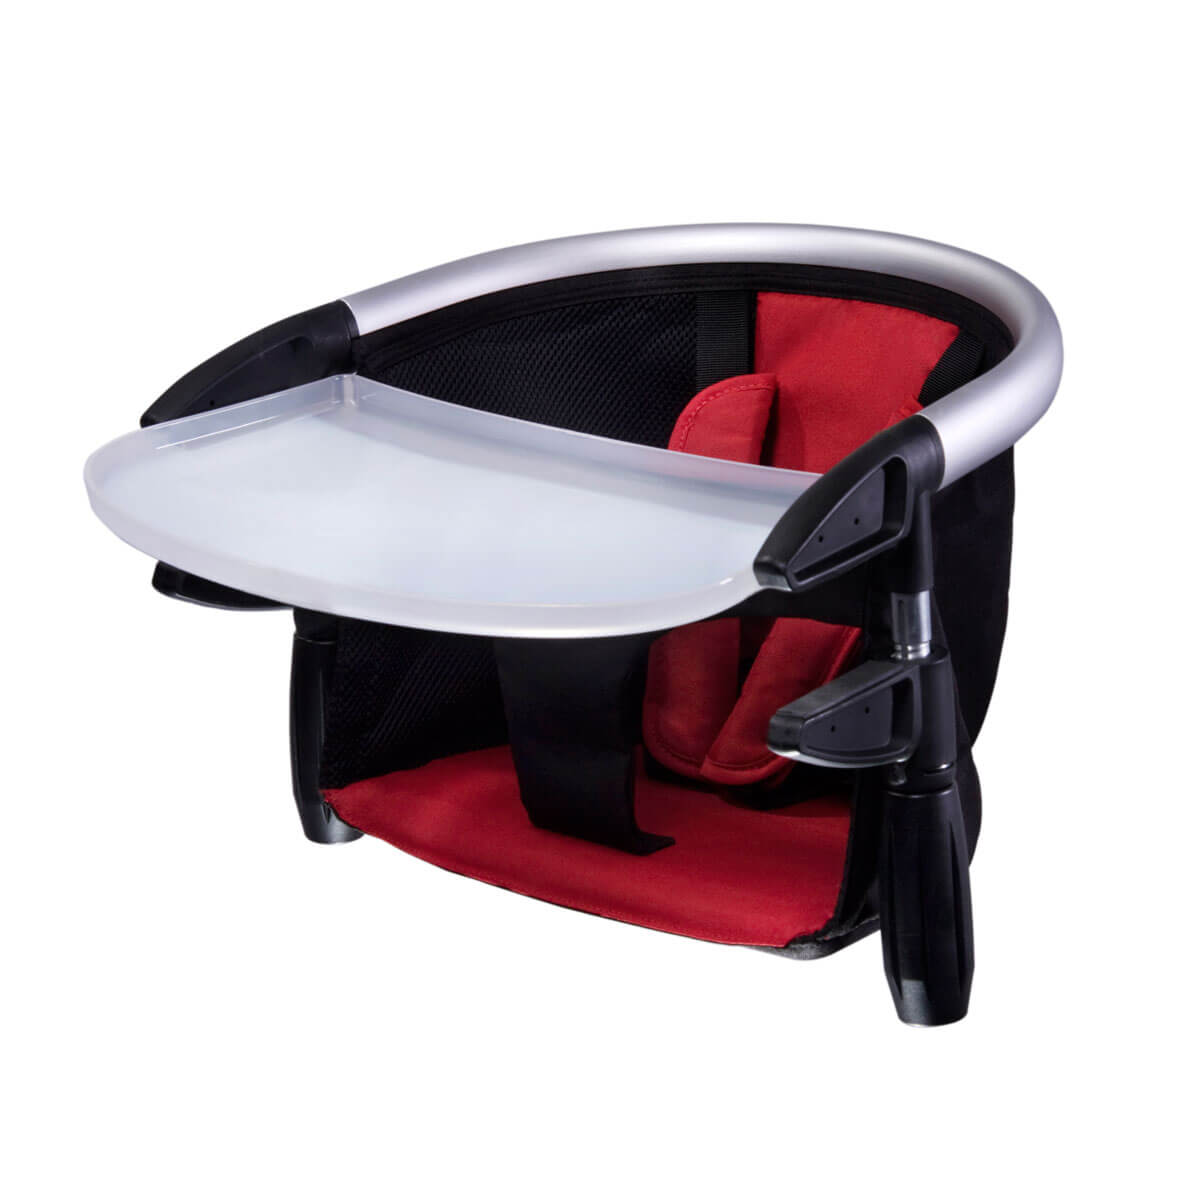 toddler chair with tray ergonomic chairs north ryde 9 best hook on high of 2018 portable baby